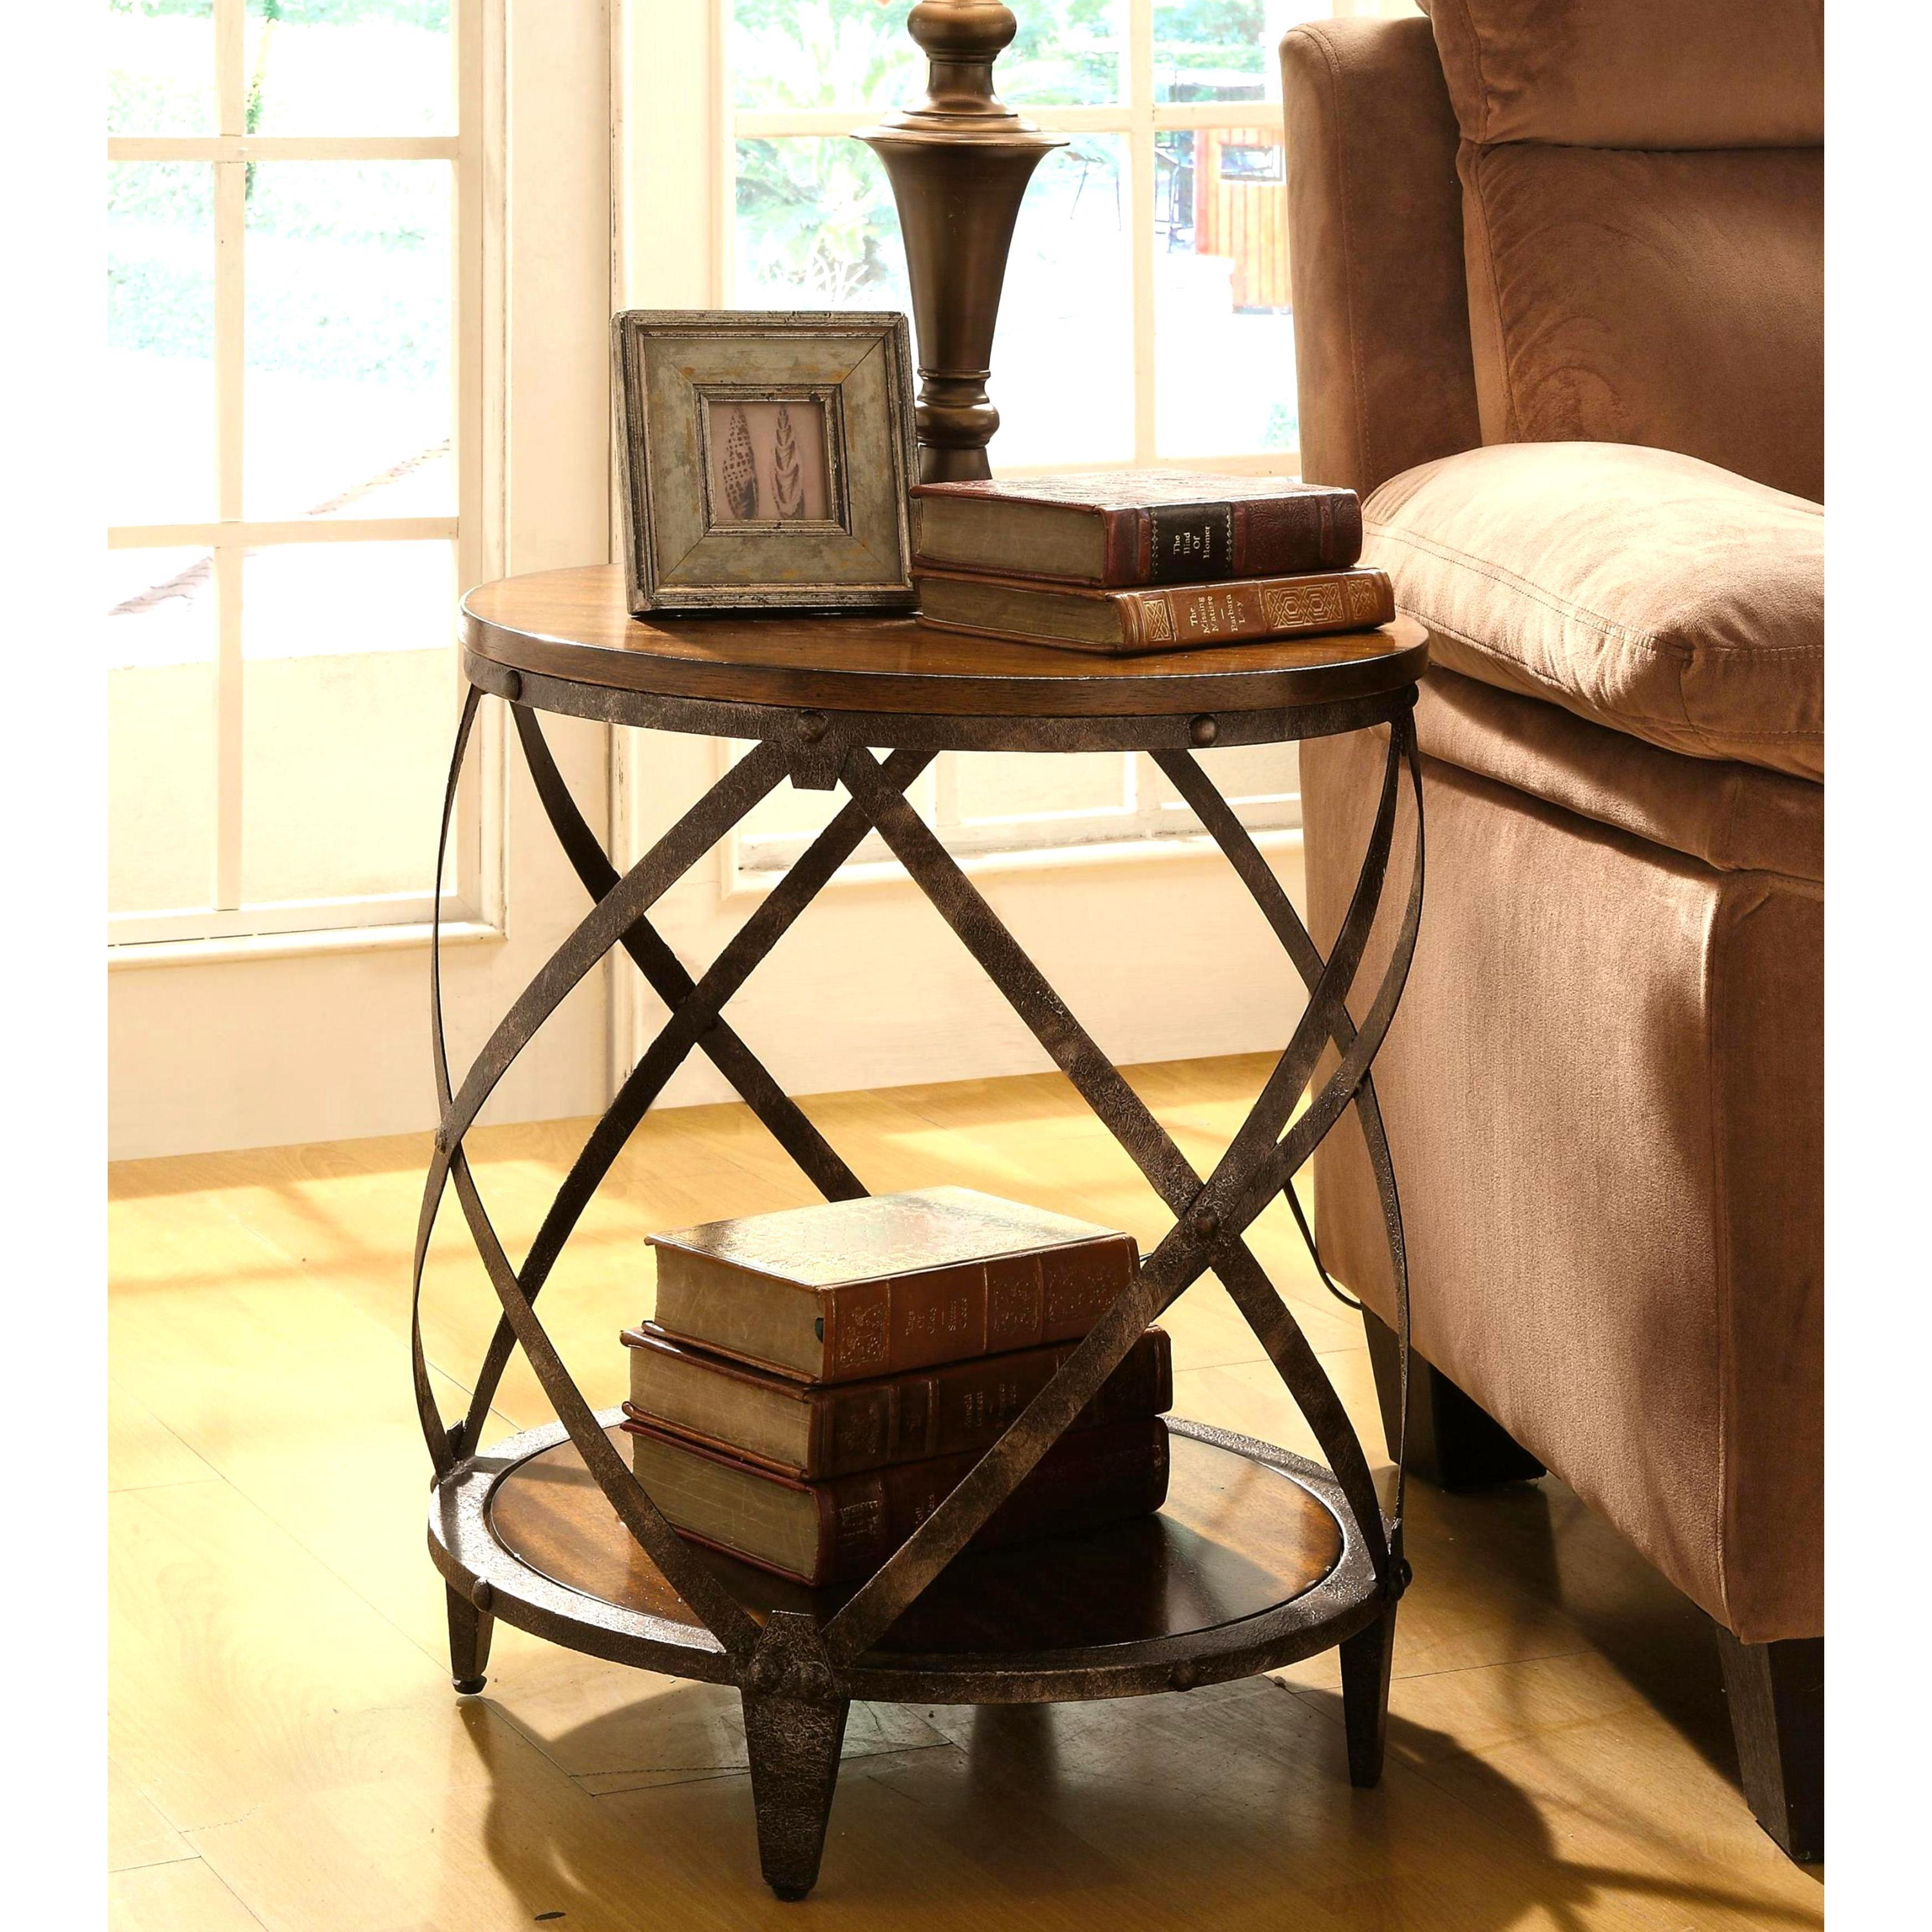 magnison distressed wood metal drum shape accent table free shaped shipping today bathroom towels cabinet door knobs slim storage unit ikea oval glass dining bbq side kitchen